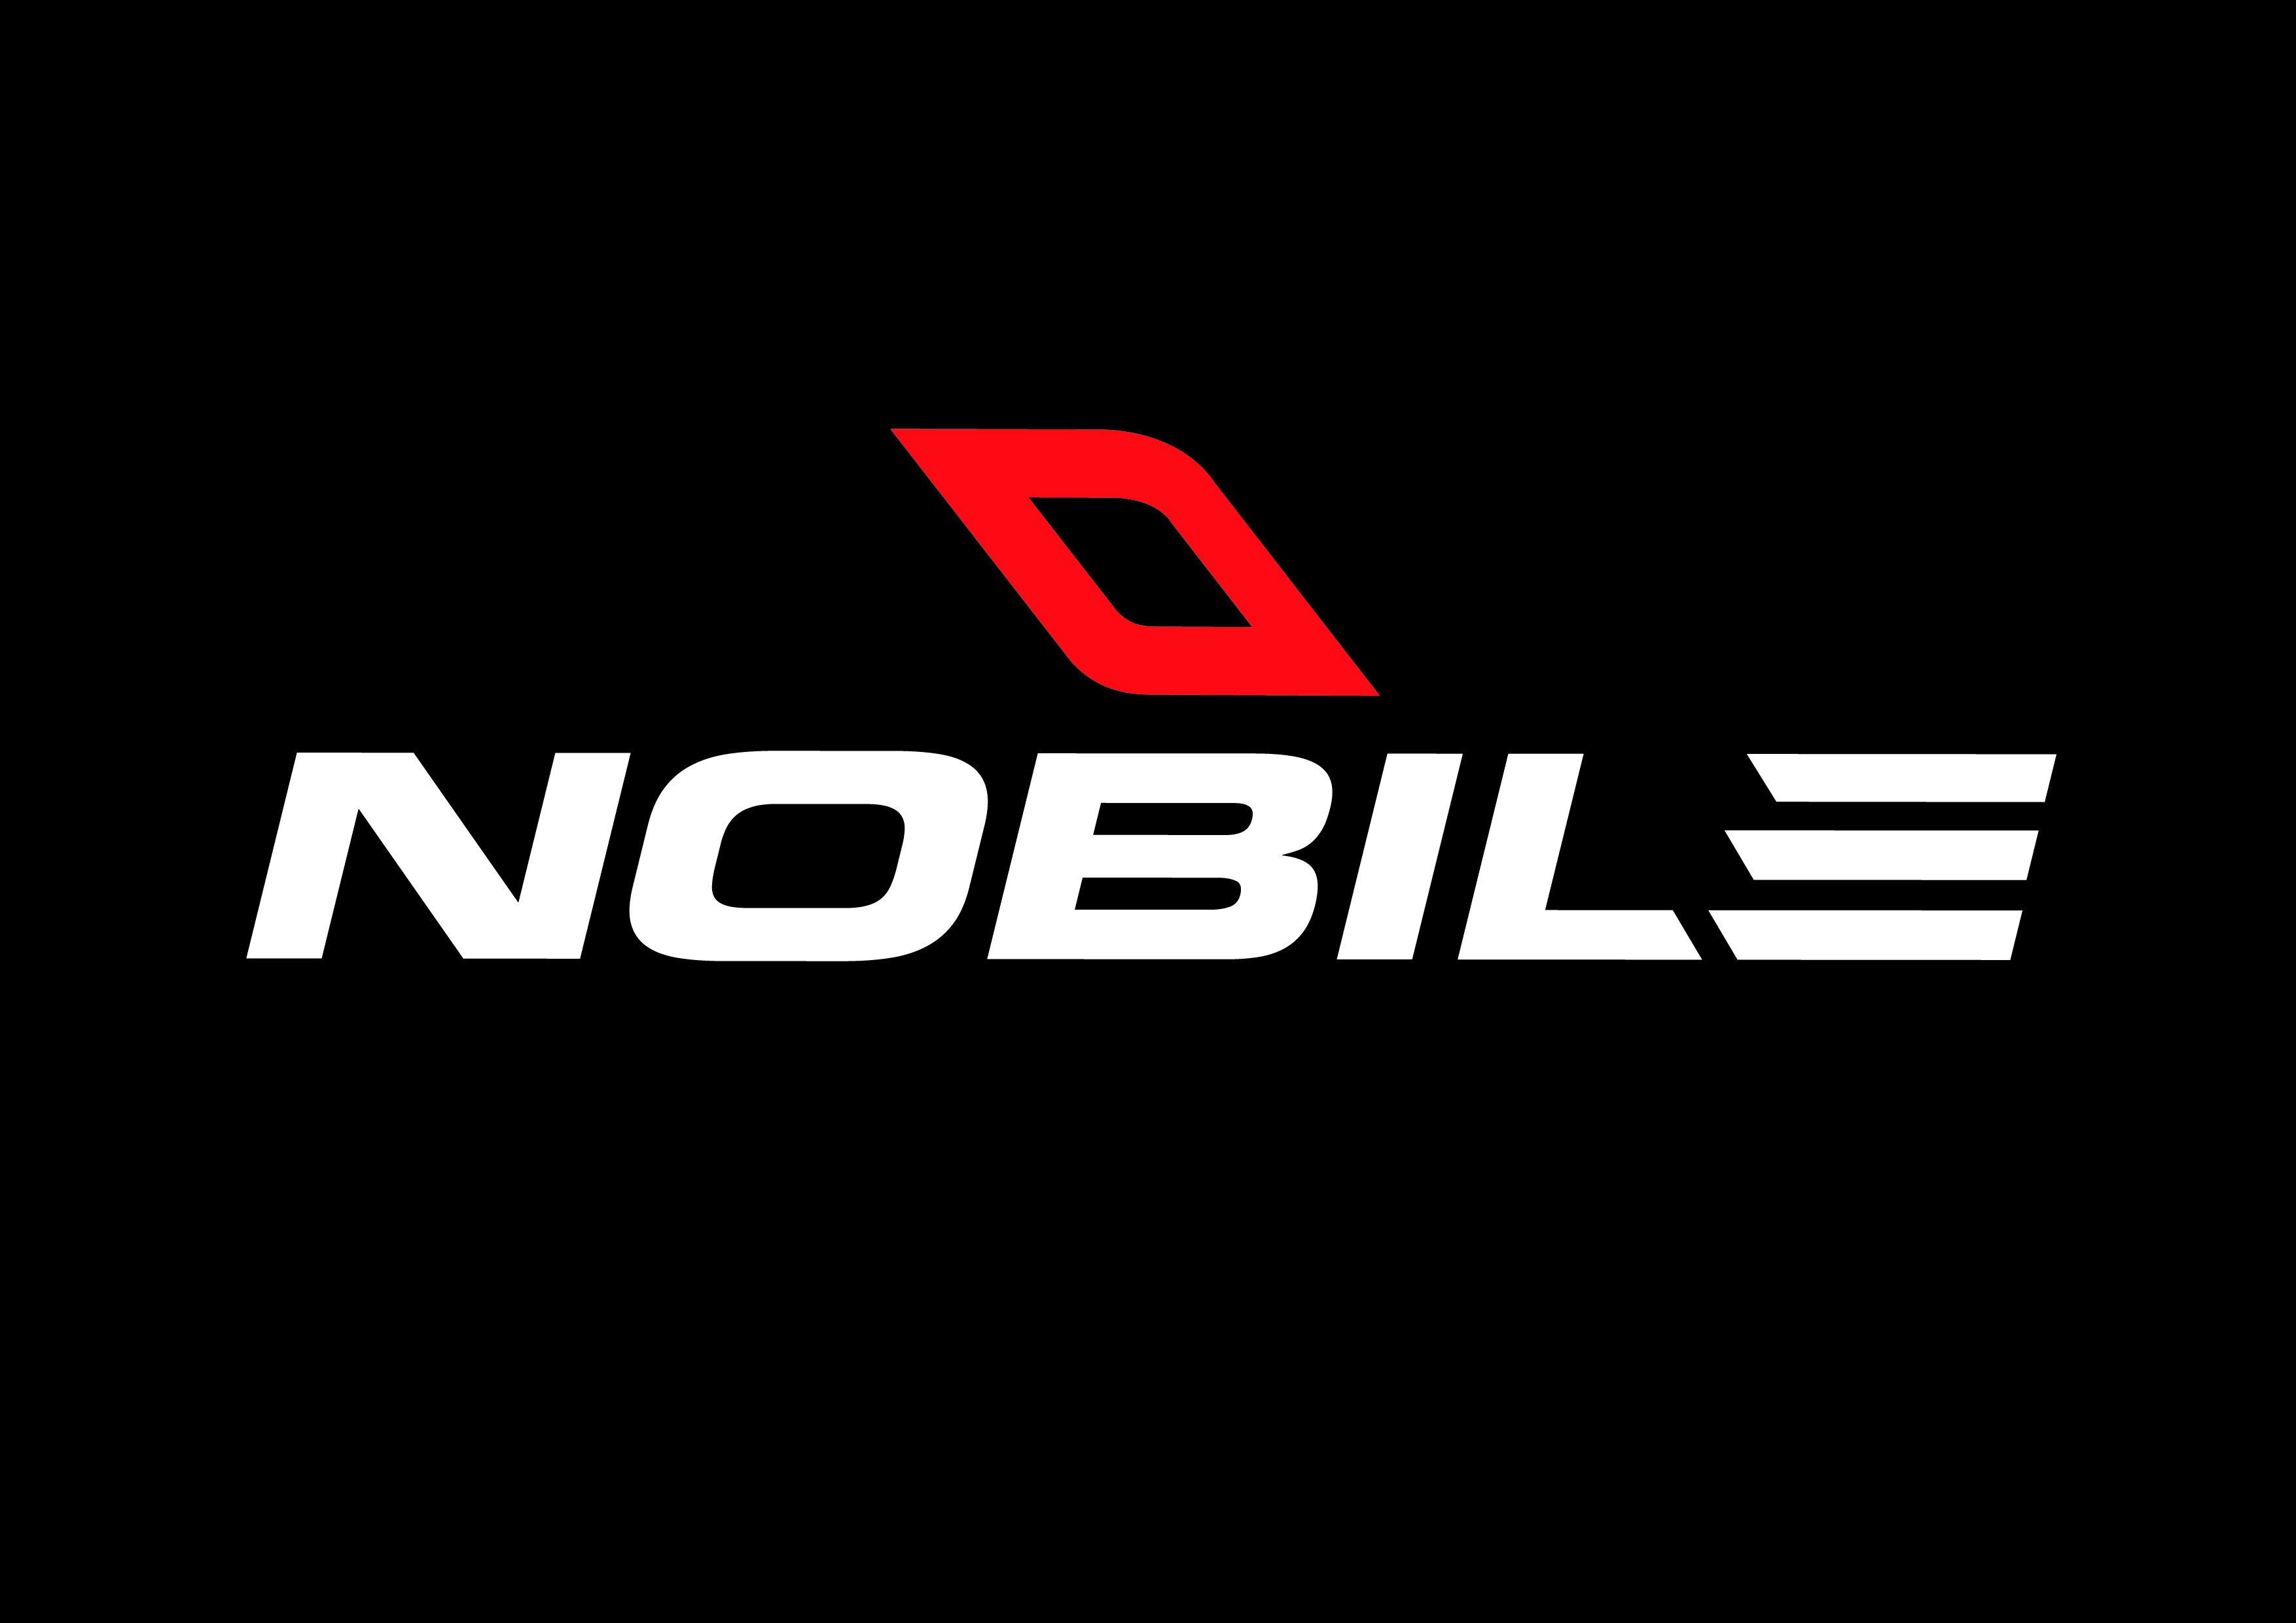 NOBILE SPORT sp.z.o.o